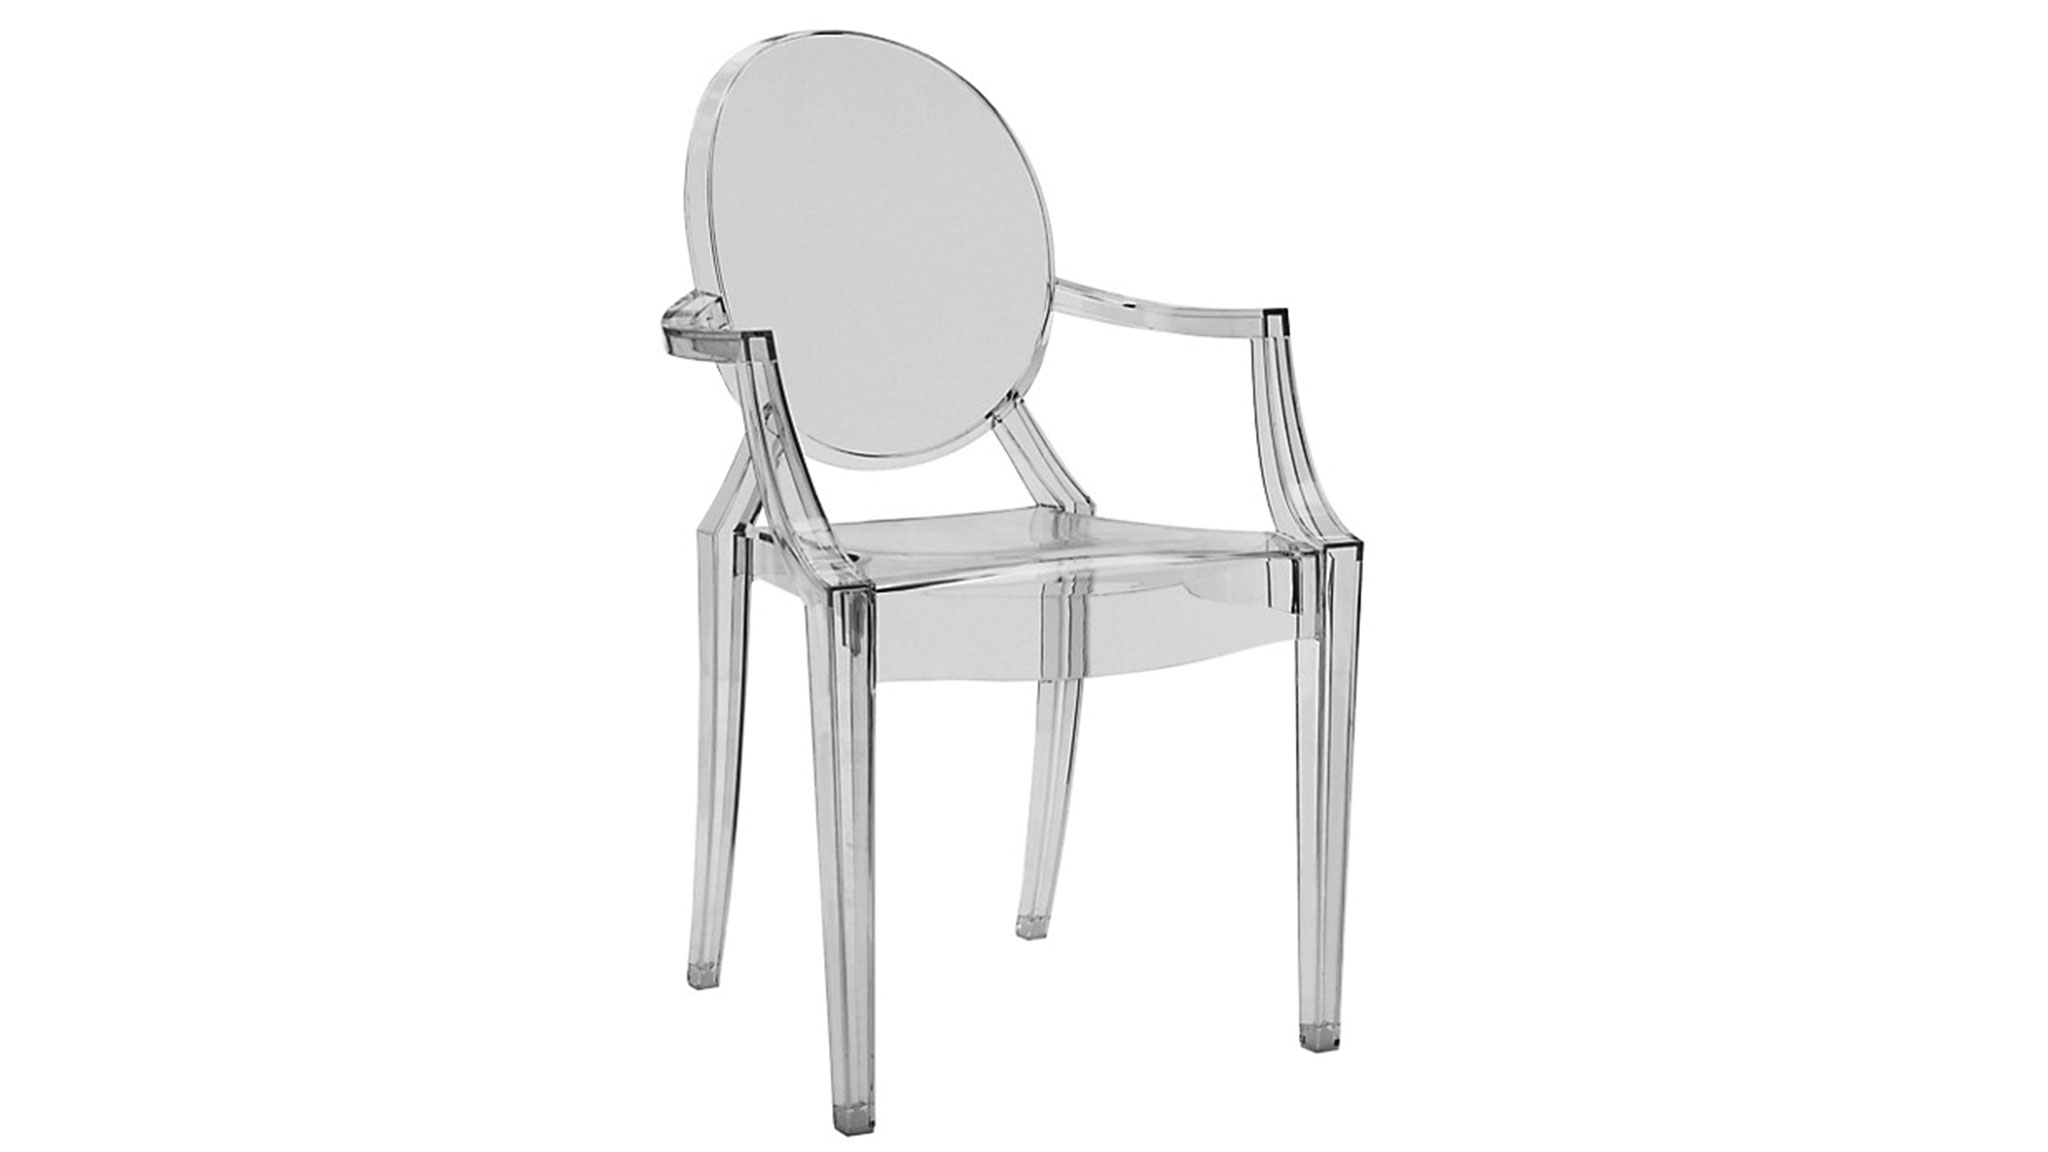 Design Classic The Louis Ghost Chair By Philippe Starck Financial Times